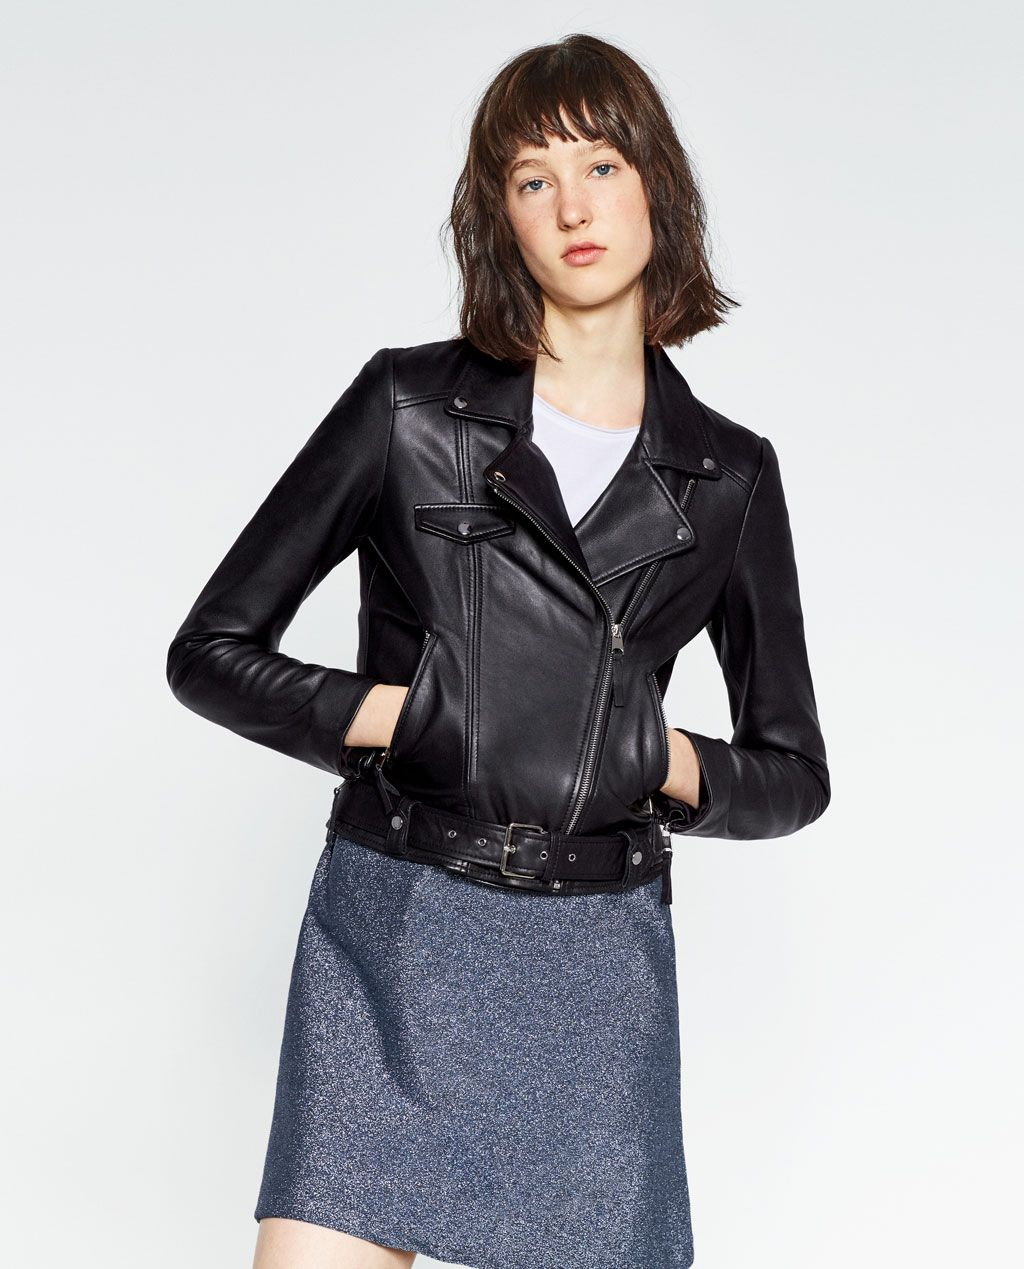 Basic Leather Jacket Outerwear Woman Collection Aw16 Leather Jacket Jackets Outerwear Women [ 1269 x 1024 Pixel ]